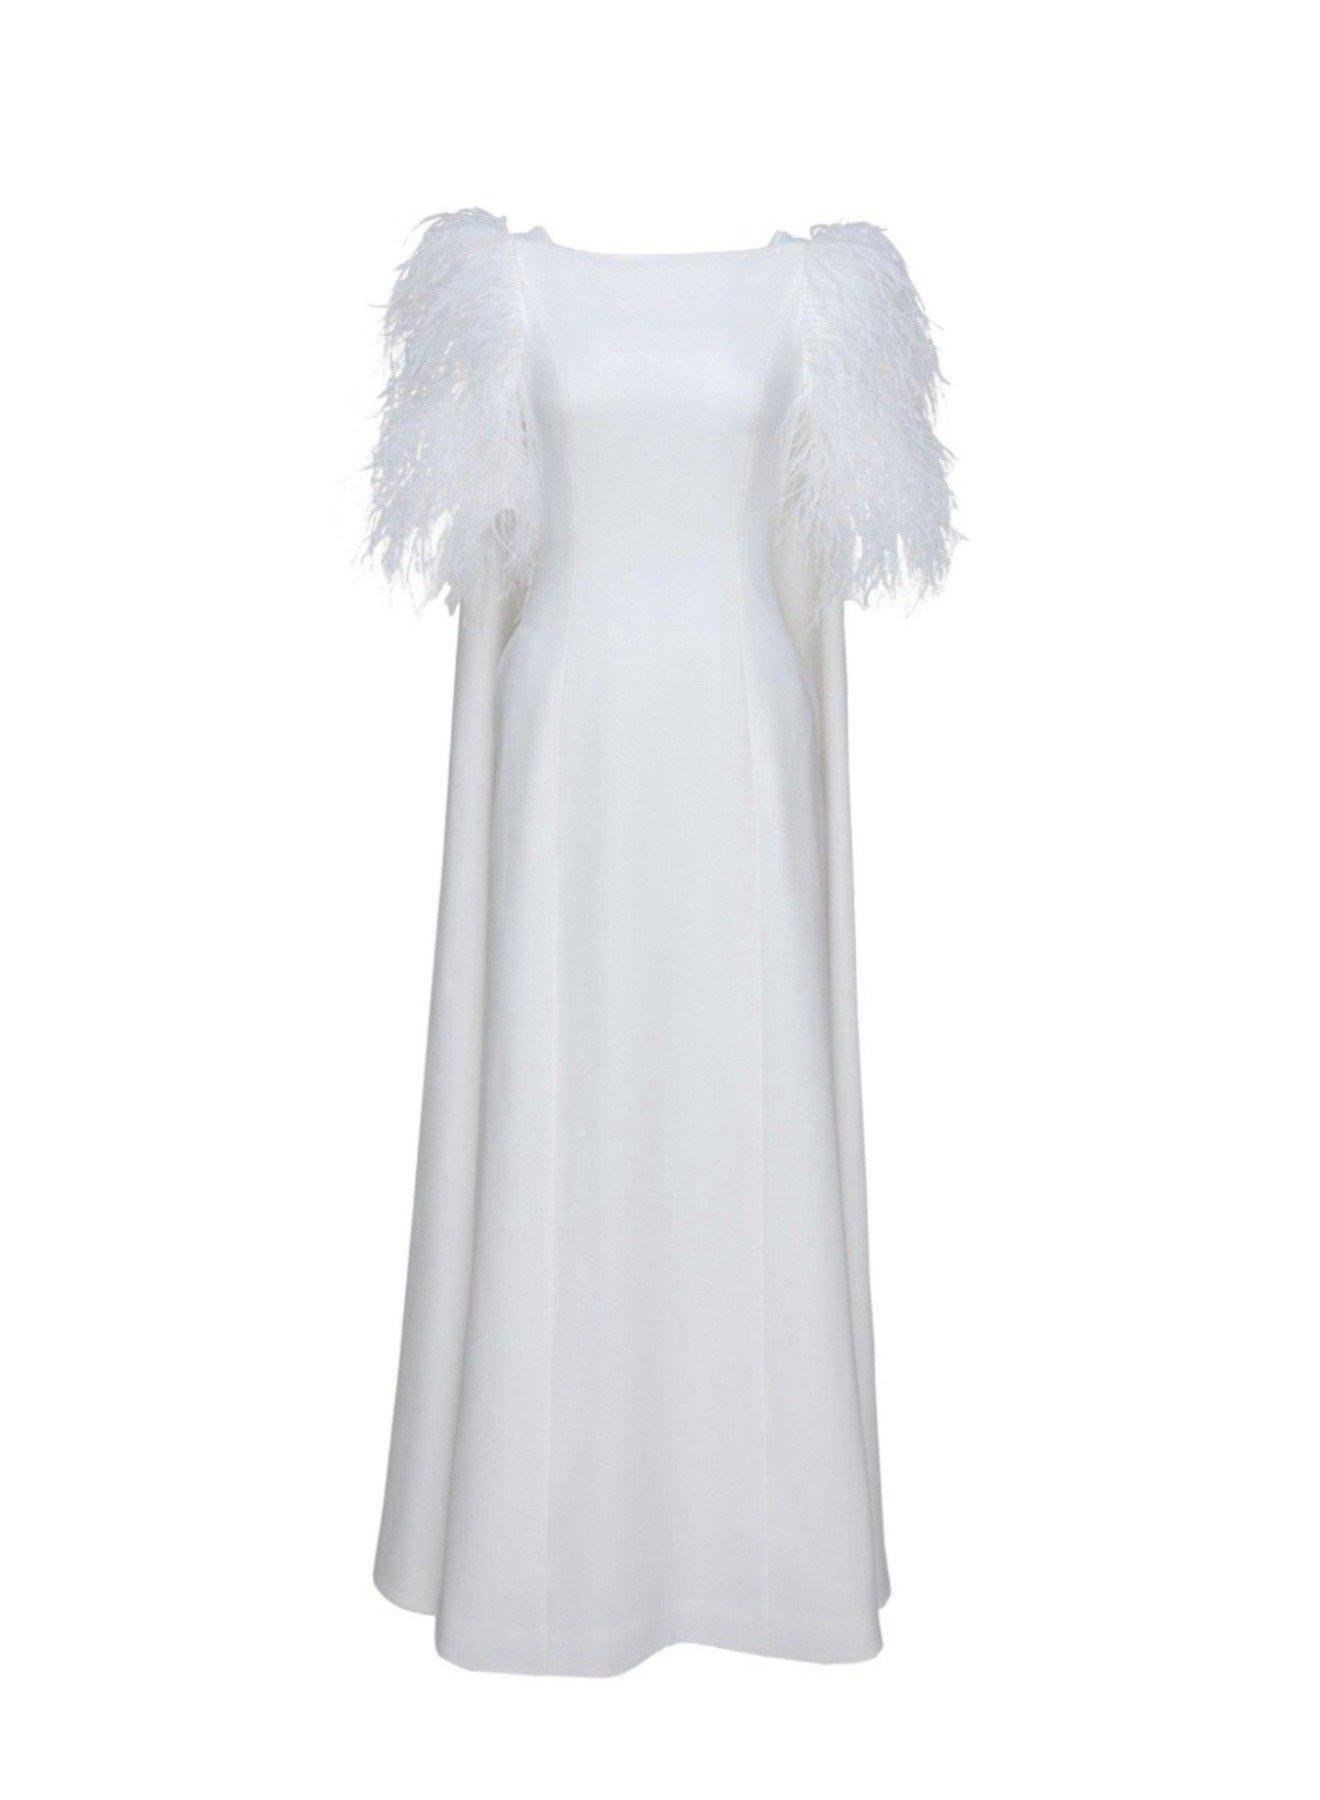 HORTENSE GOWN PURE WHITE CREPE 4